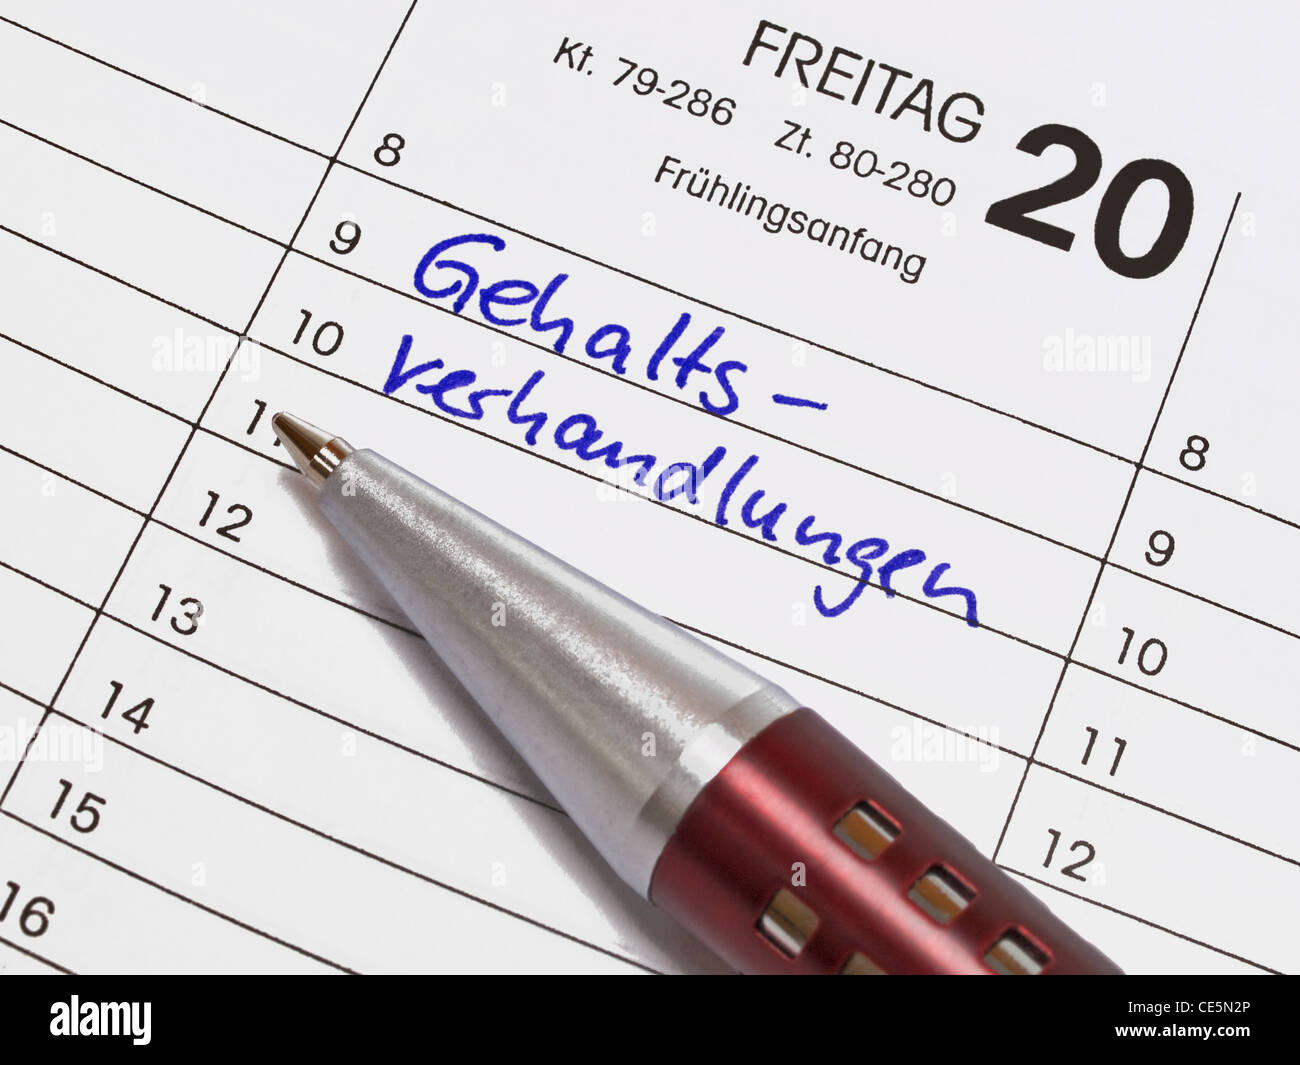 A calendar shows March the 20th, the item salary negotiations is in the calendar written with German words. Beside - Stock Image